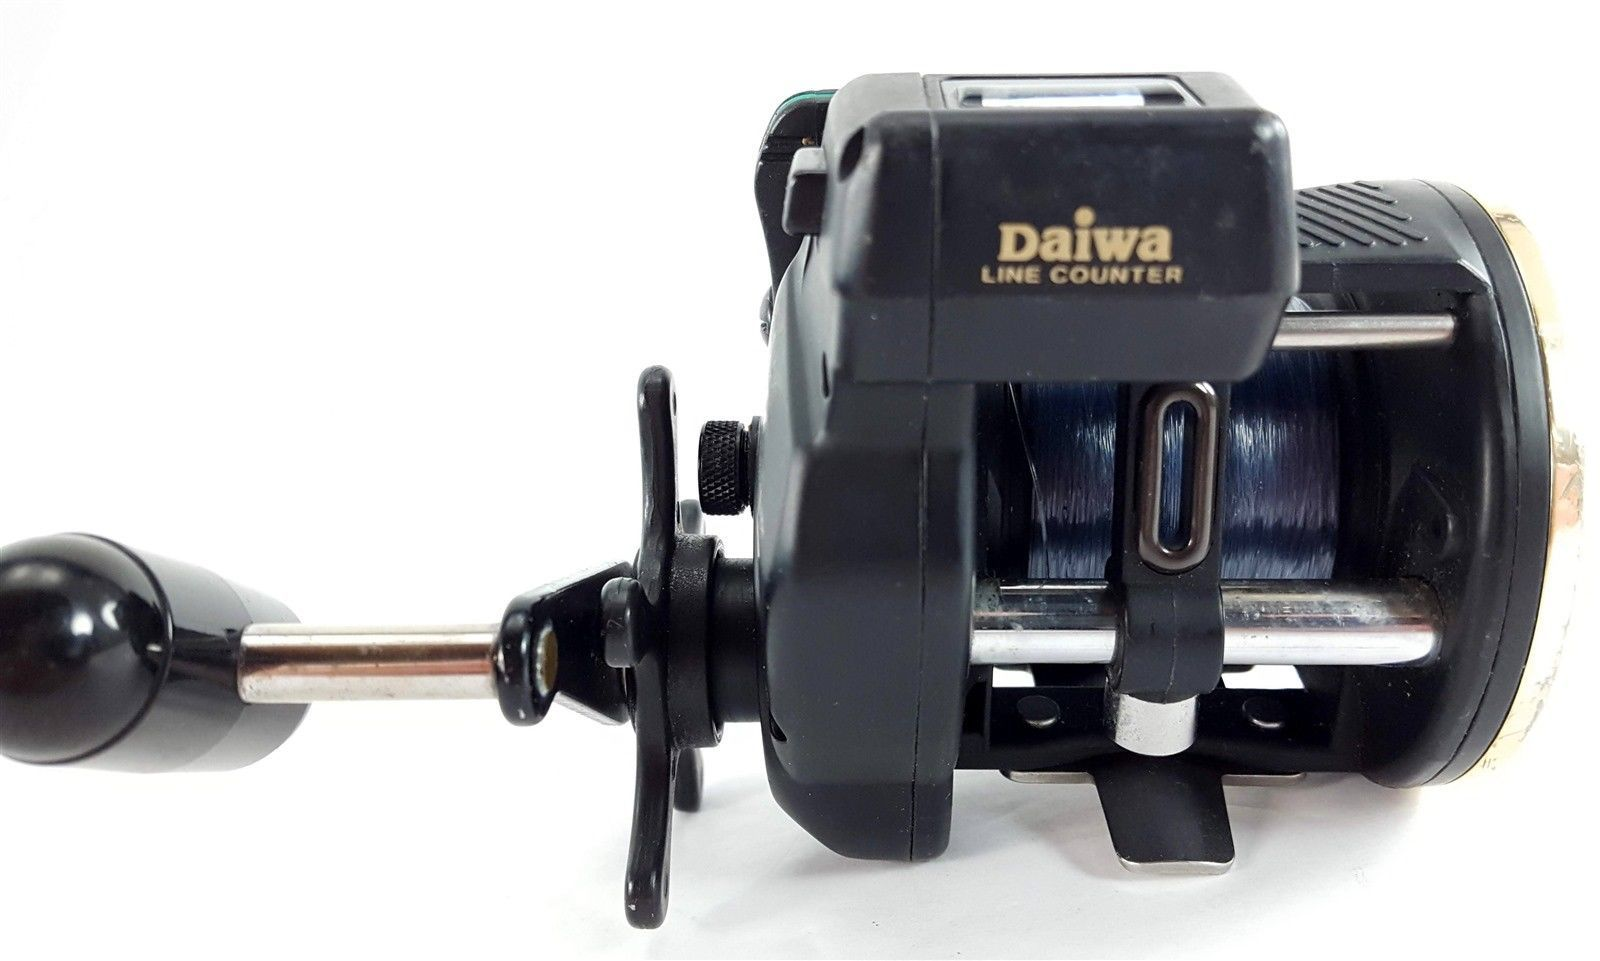 4629570d220 Daiwa Sealine SG27LC Direct Drive Line Counter Conventional Fishing Reel